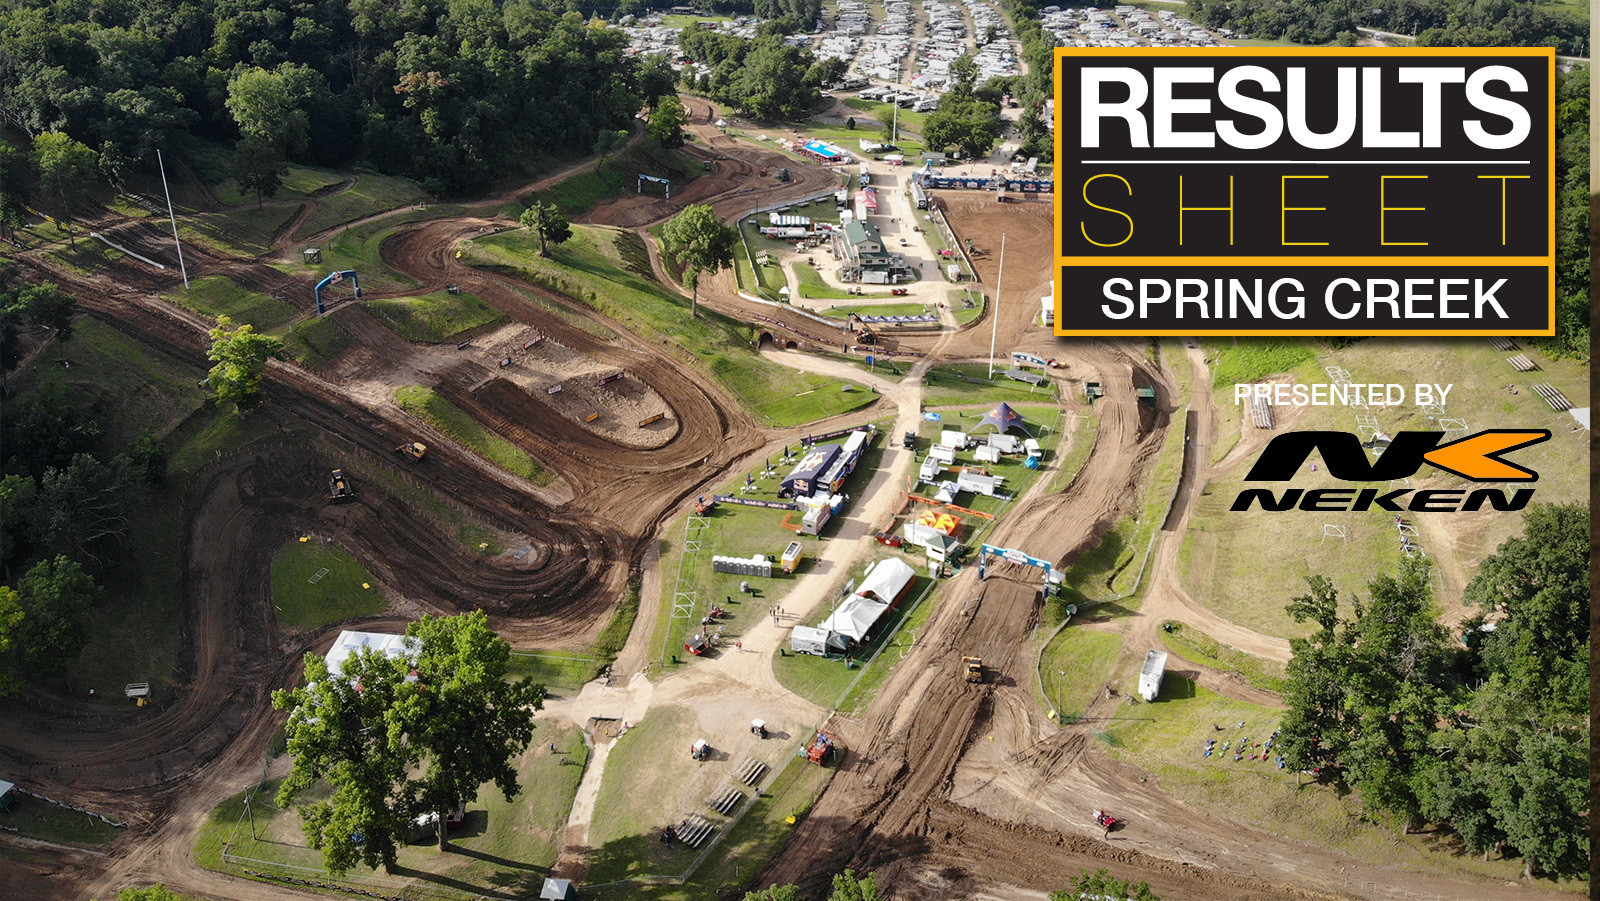 Results Sheet: 2018 Spring Creek Motocross National